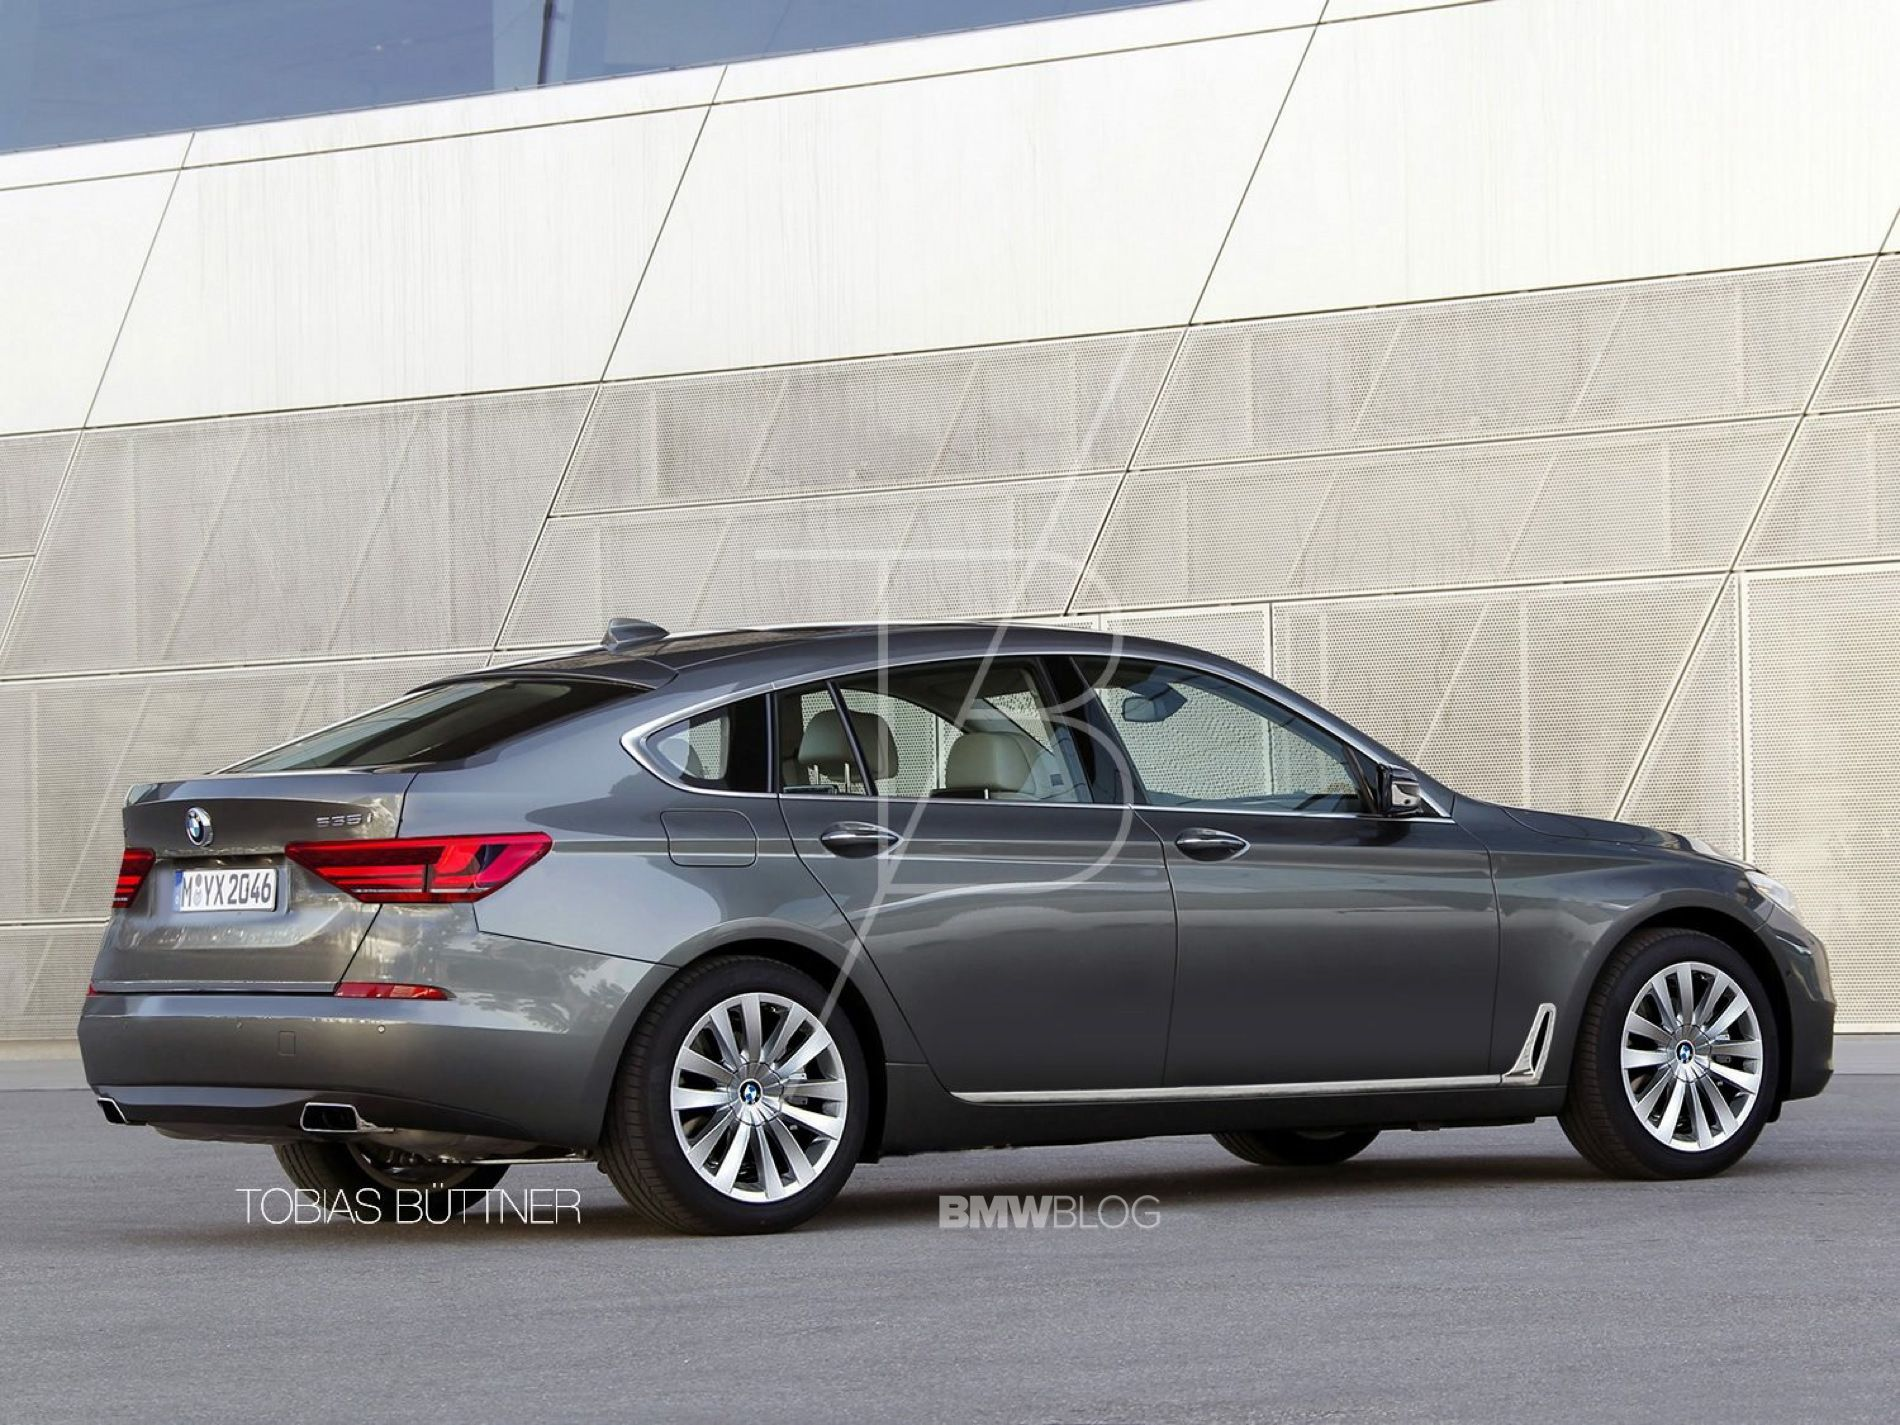 Rumor Upcoming BMW G Series GT To Be Sold Under The Series - 5 series bmw coupe